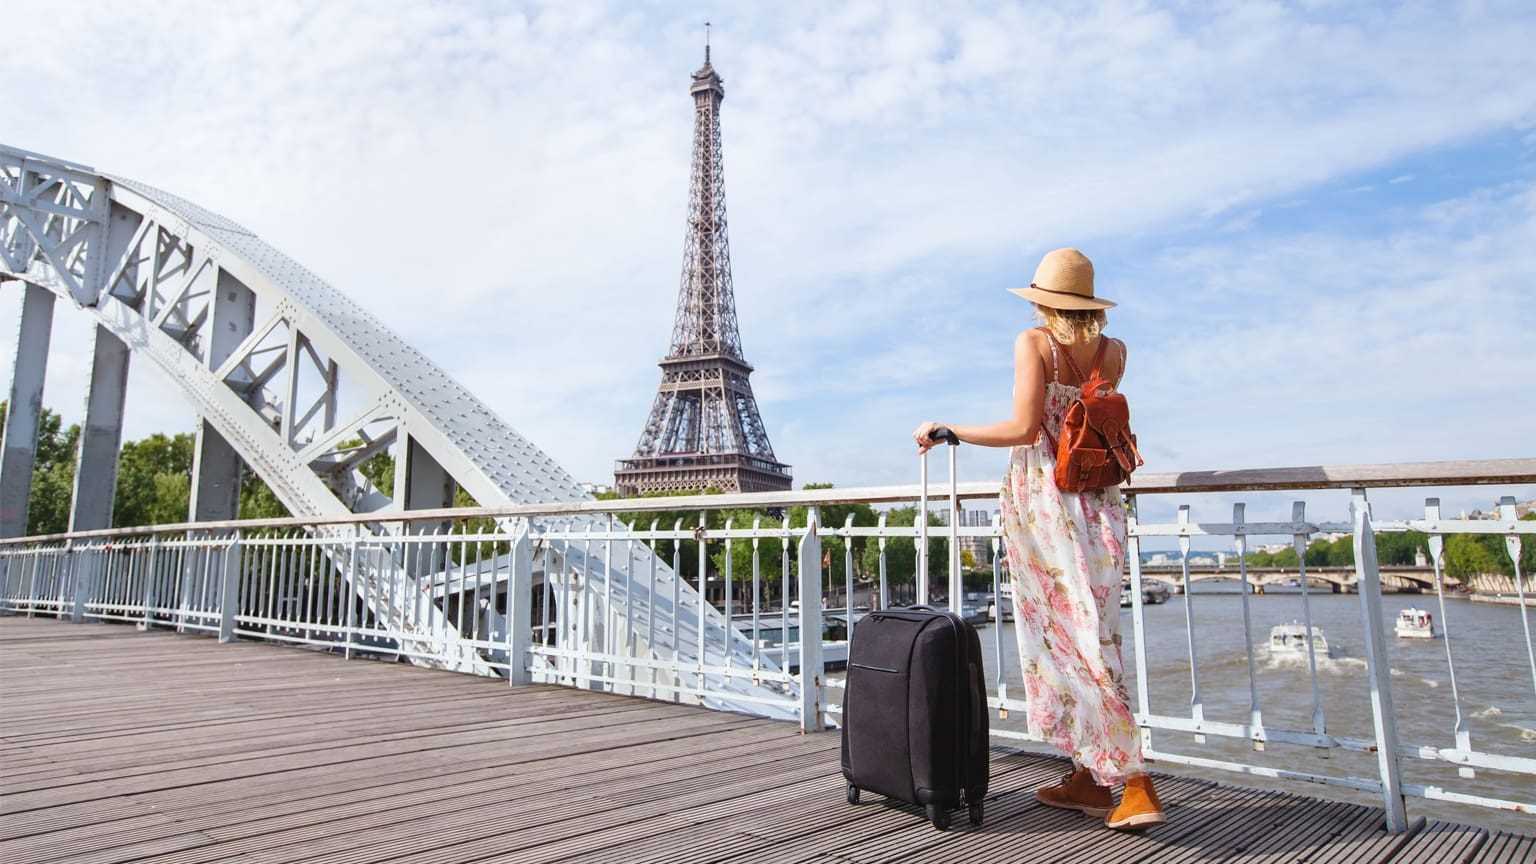 Woman with suitcase near Eiffel Tower, France